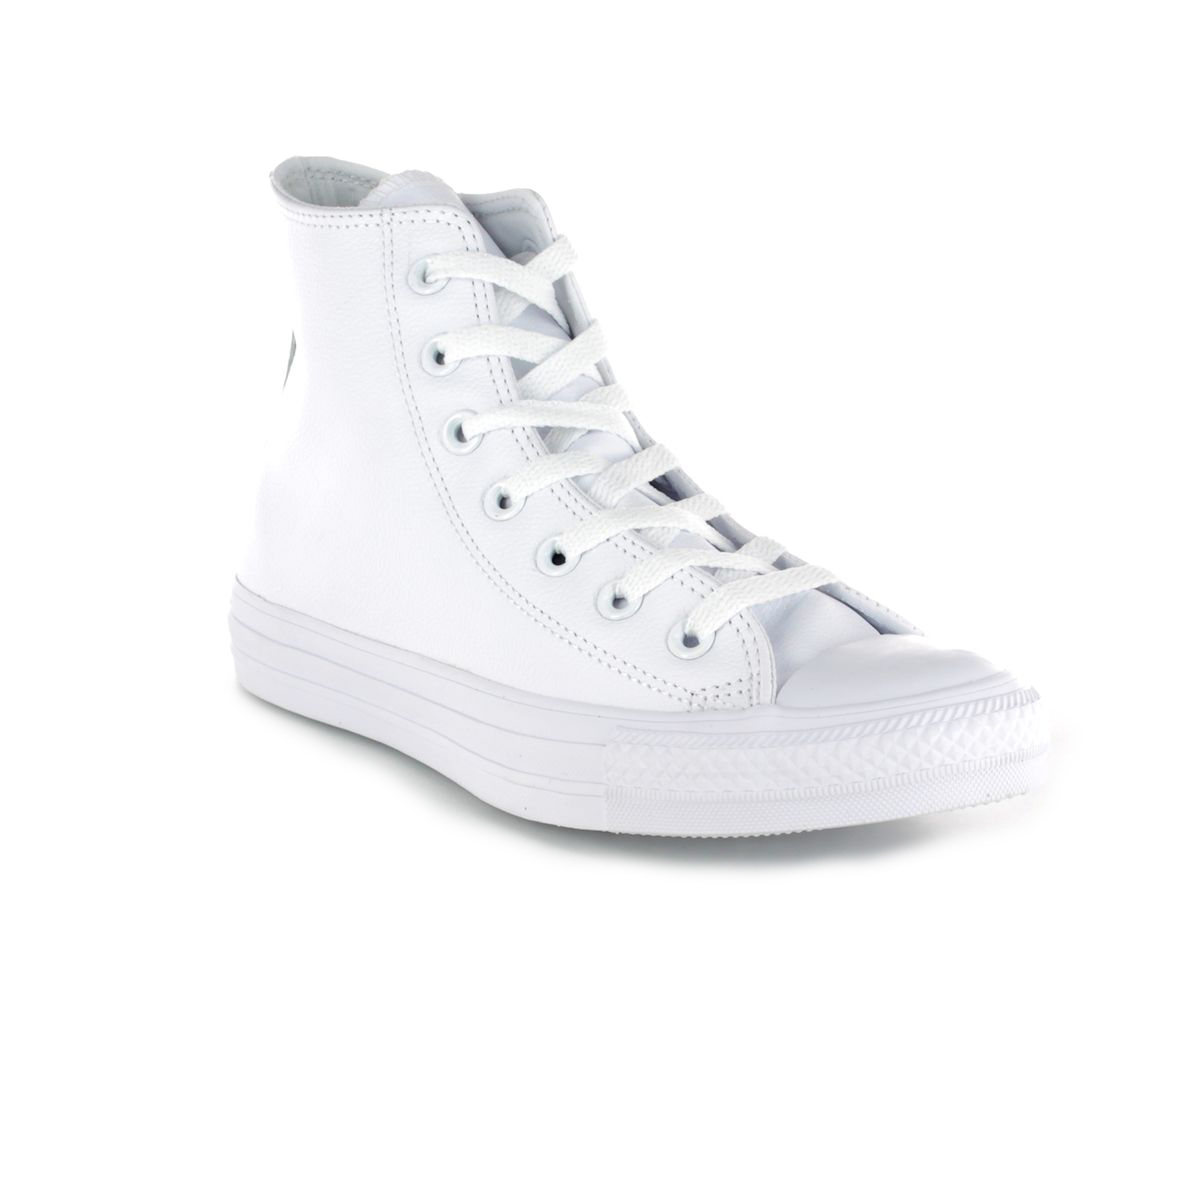 de59dc7f85b Converse Trainers - White - 1T406 ALL STAR HI Top Leather Mono